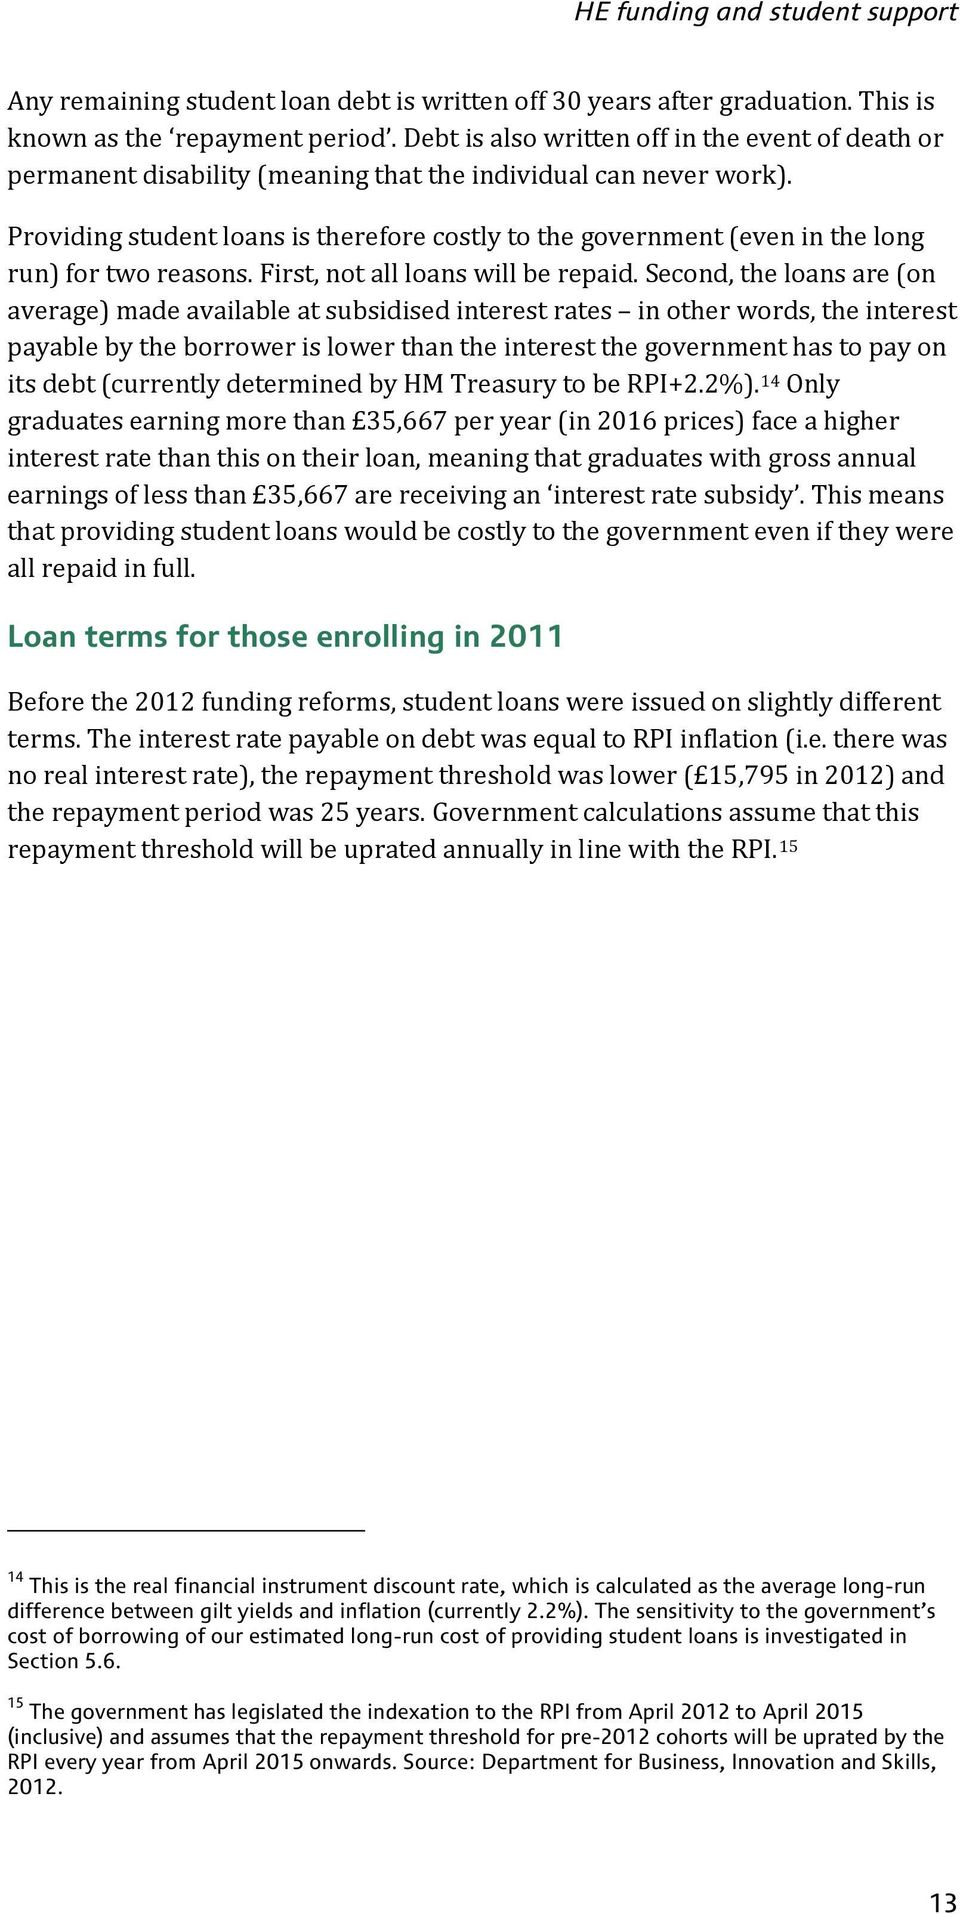 Providing student loans is therefore costly to the government (even in the long run) for two reasons. First, not all loans will be repaid.